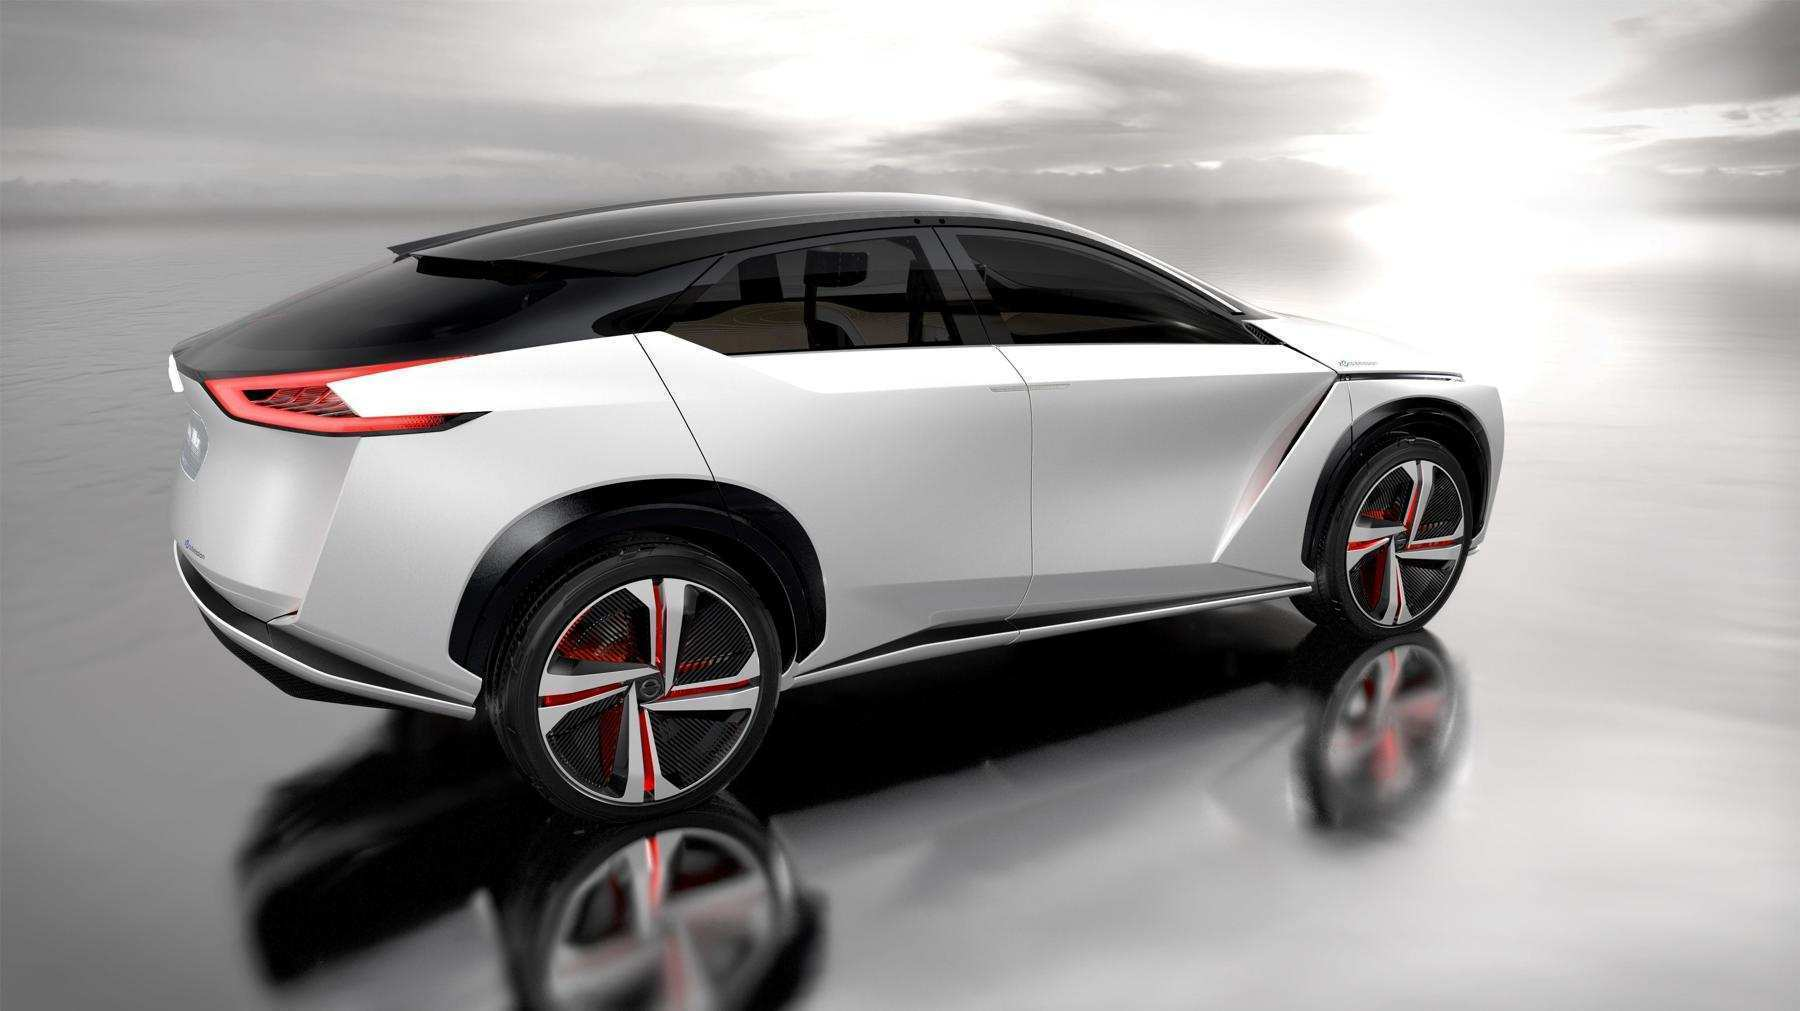 78 The Best Mitsubishi Electric Car 2020 Concept